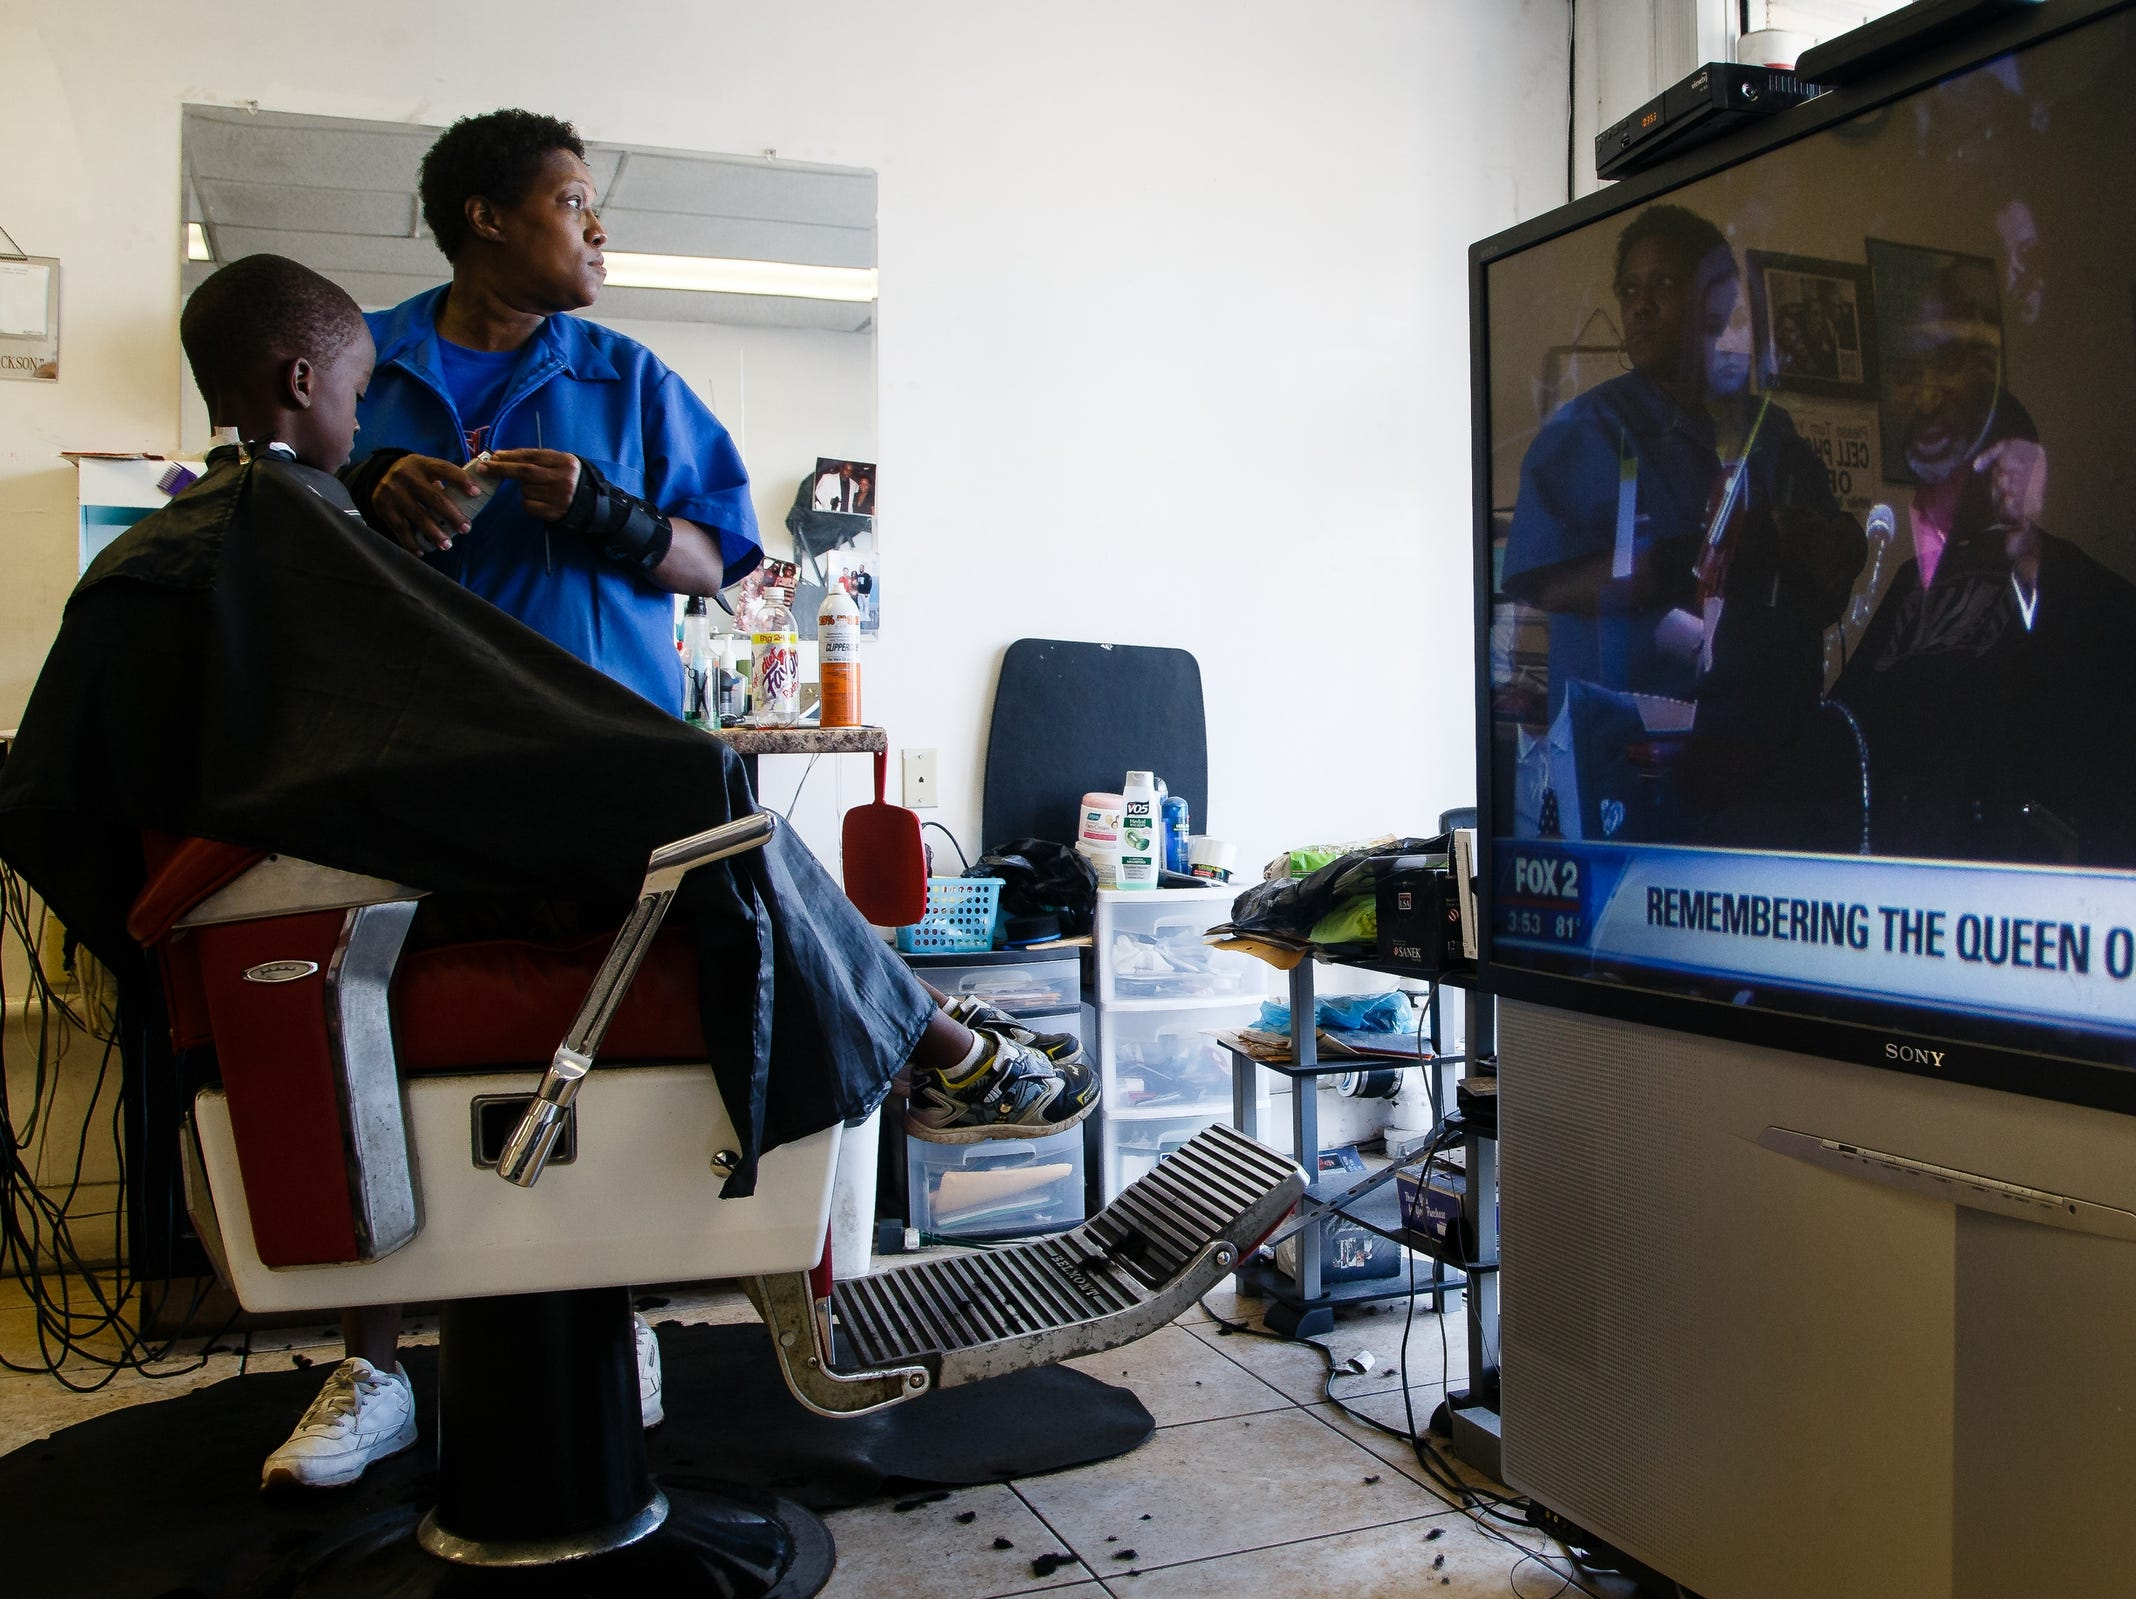 C-Spot Barbershop owner Crystal Jackson, center, cuts hair with Aretha Franklin's funeral on the TV in the background on Friday, Aug. 31, 2018 in Detroit. Franklin died on August 16, 2018.